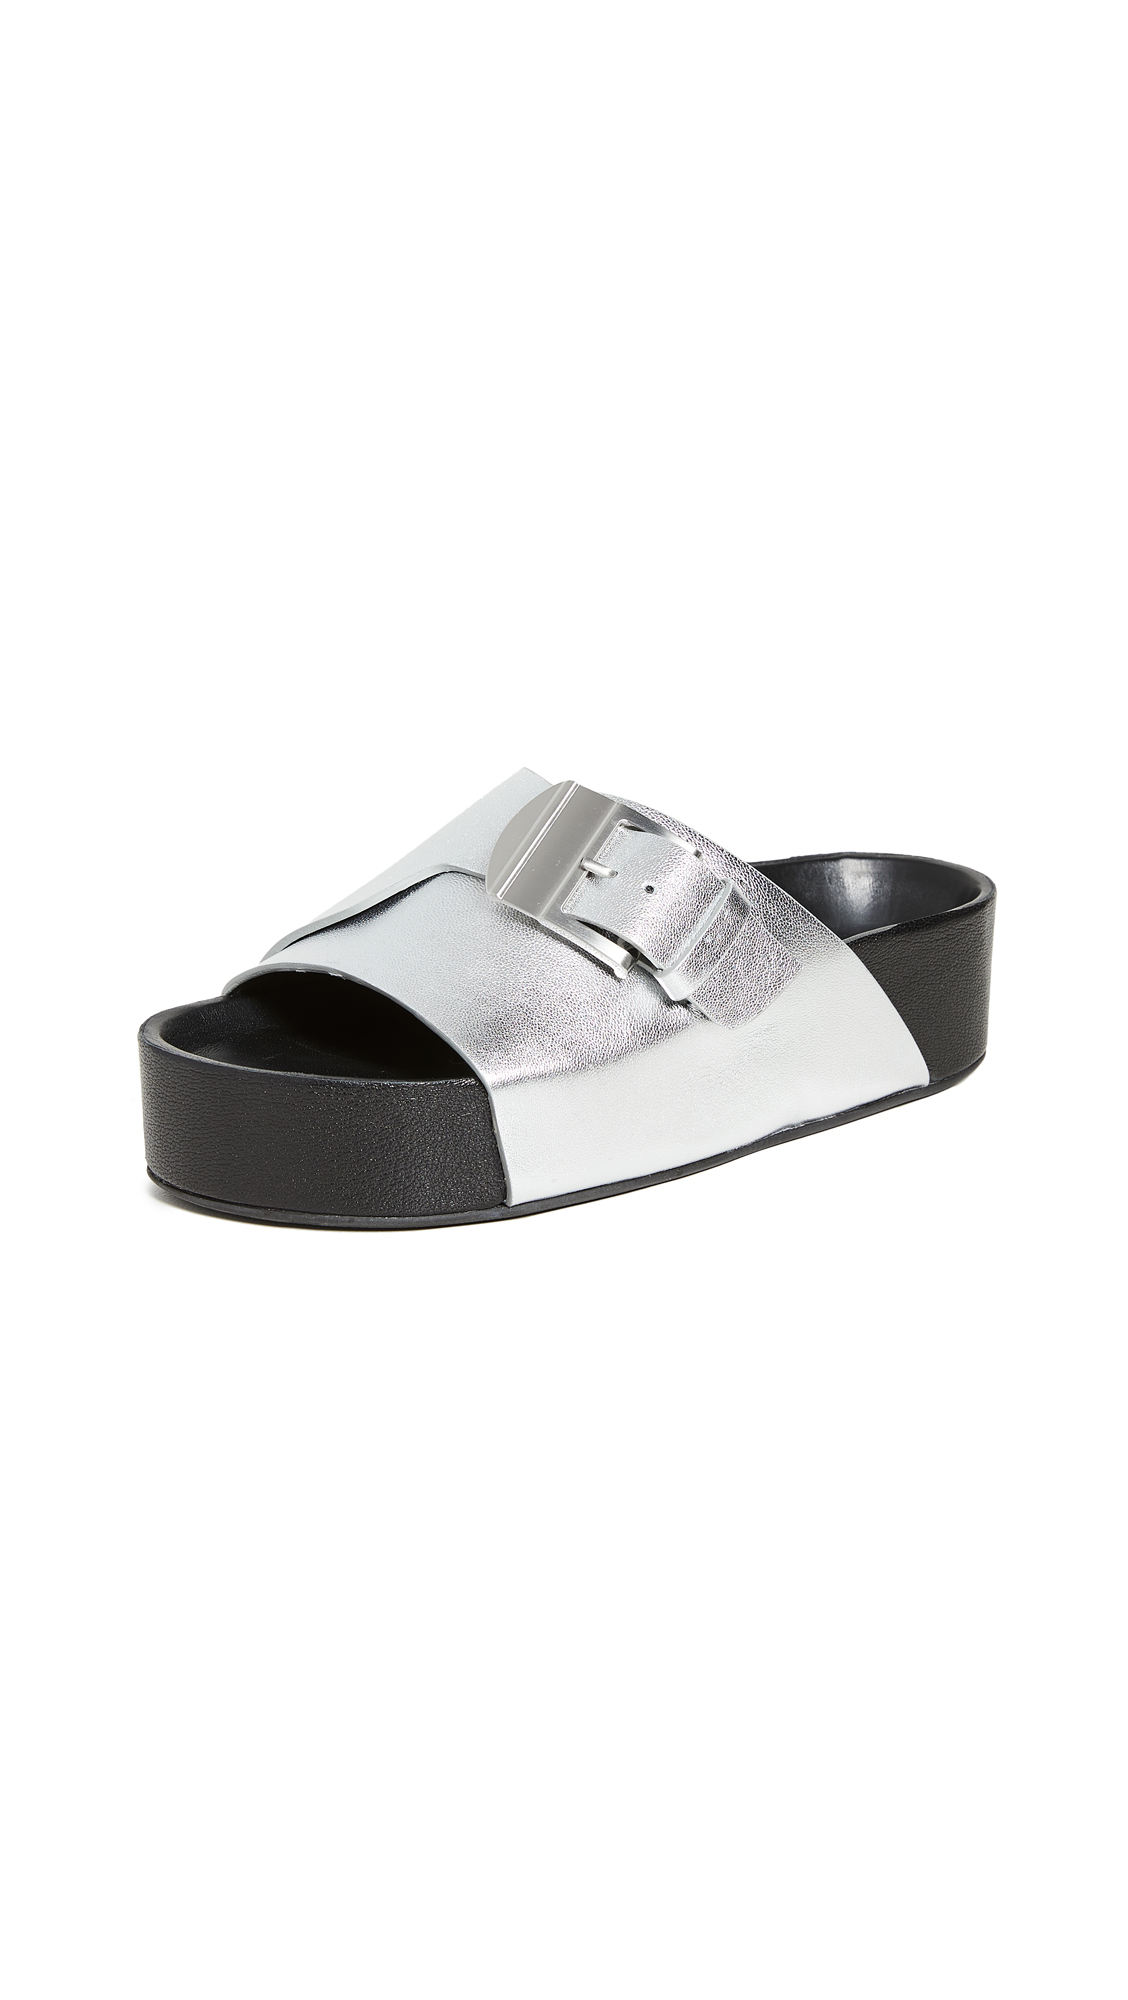 Simon Miller Chunk Slides - 40% Off Sale